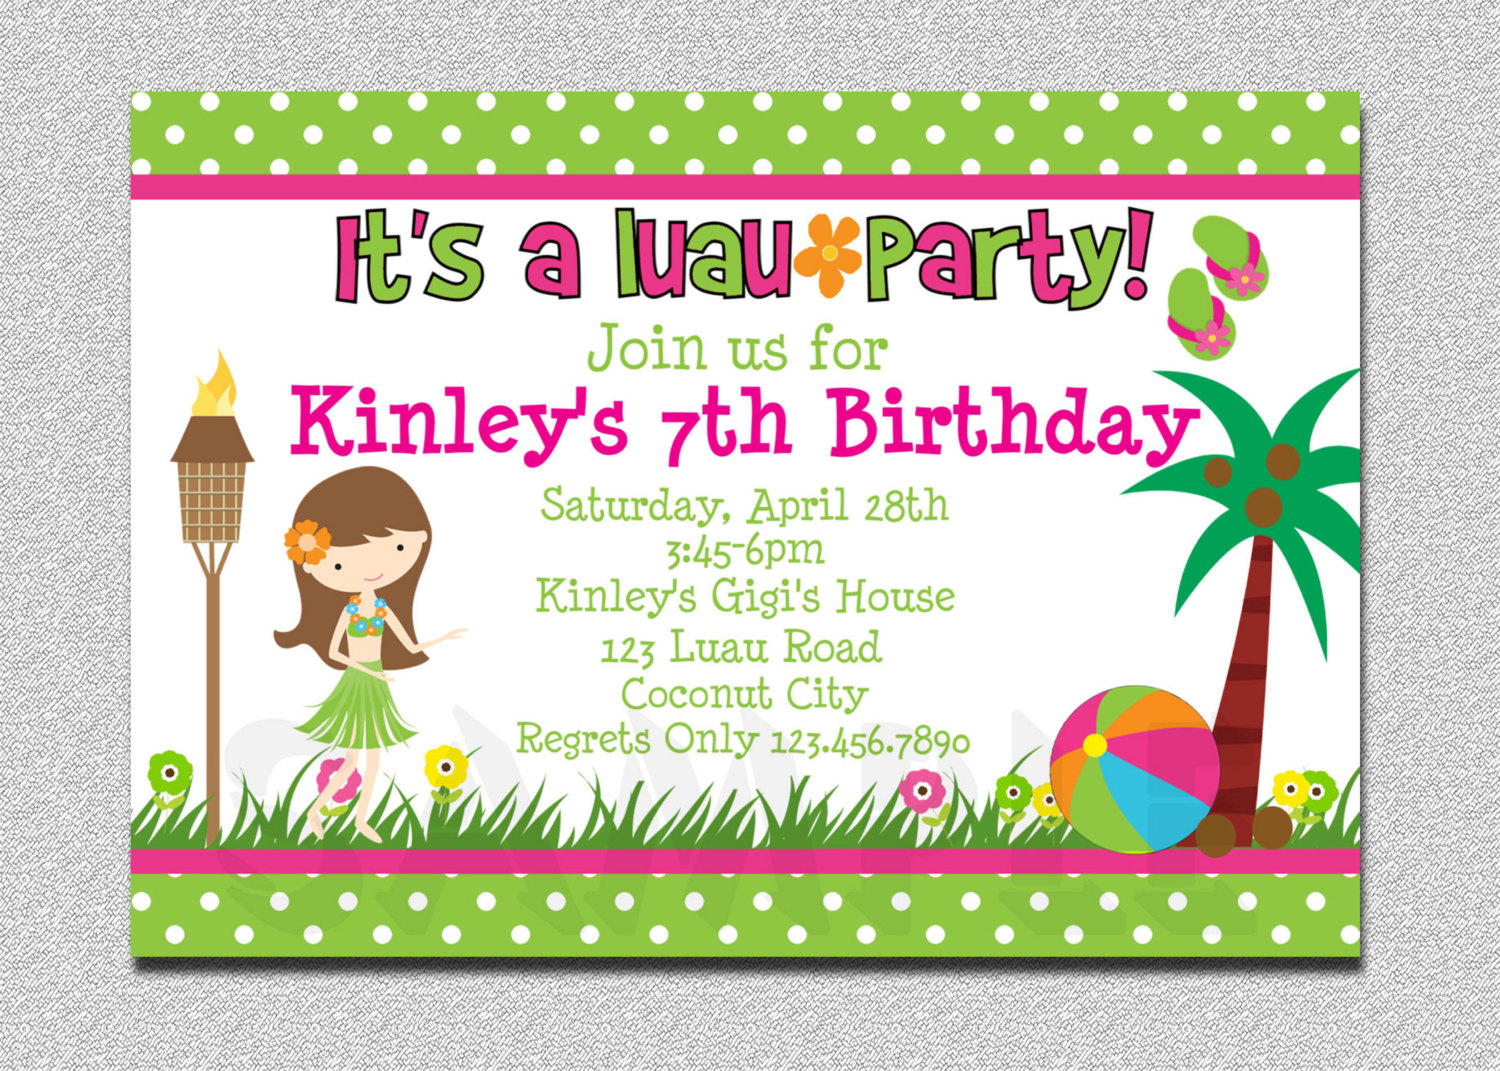 20 luau birthday invitations designs birthday party invitations luau birthday invitations filmwisefo